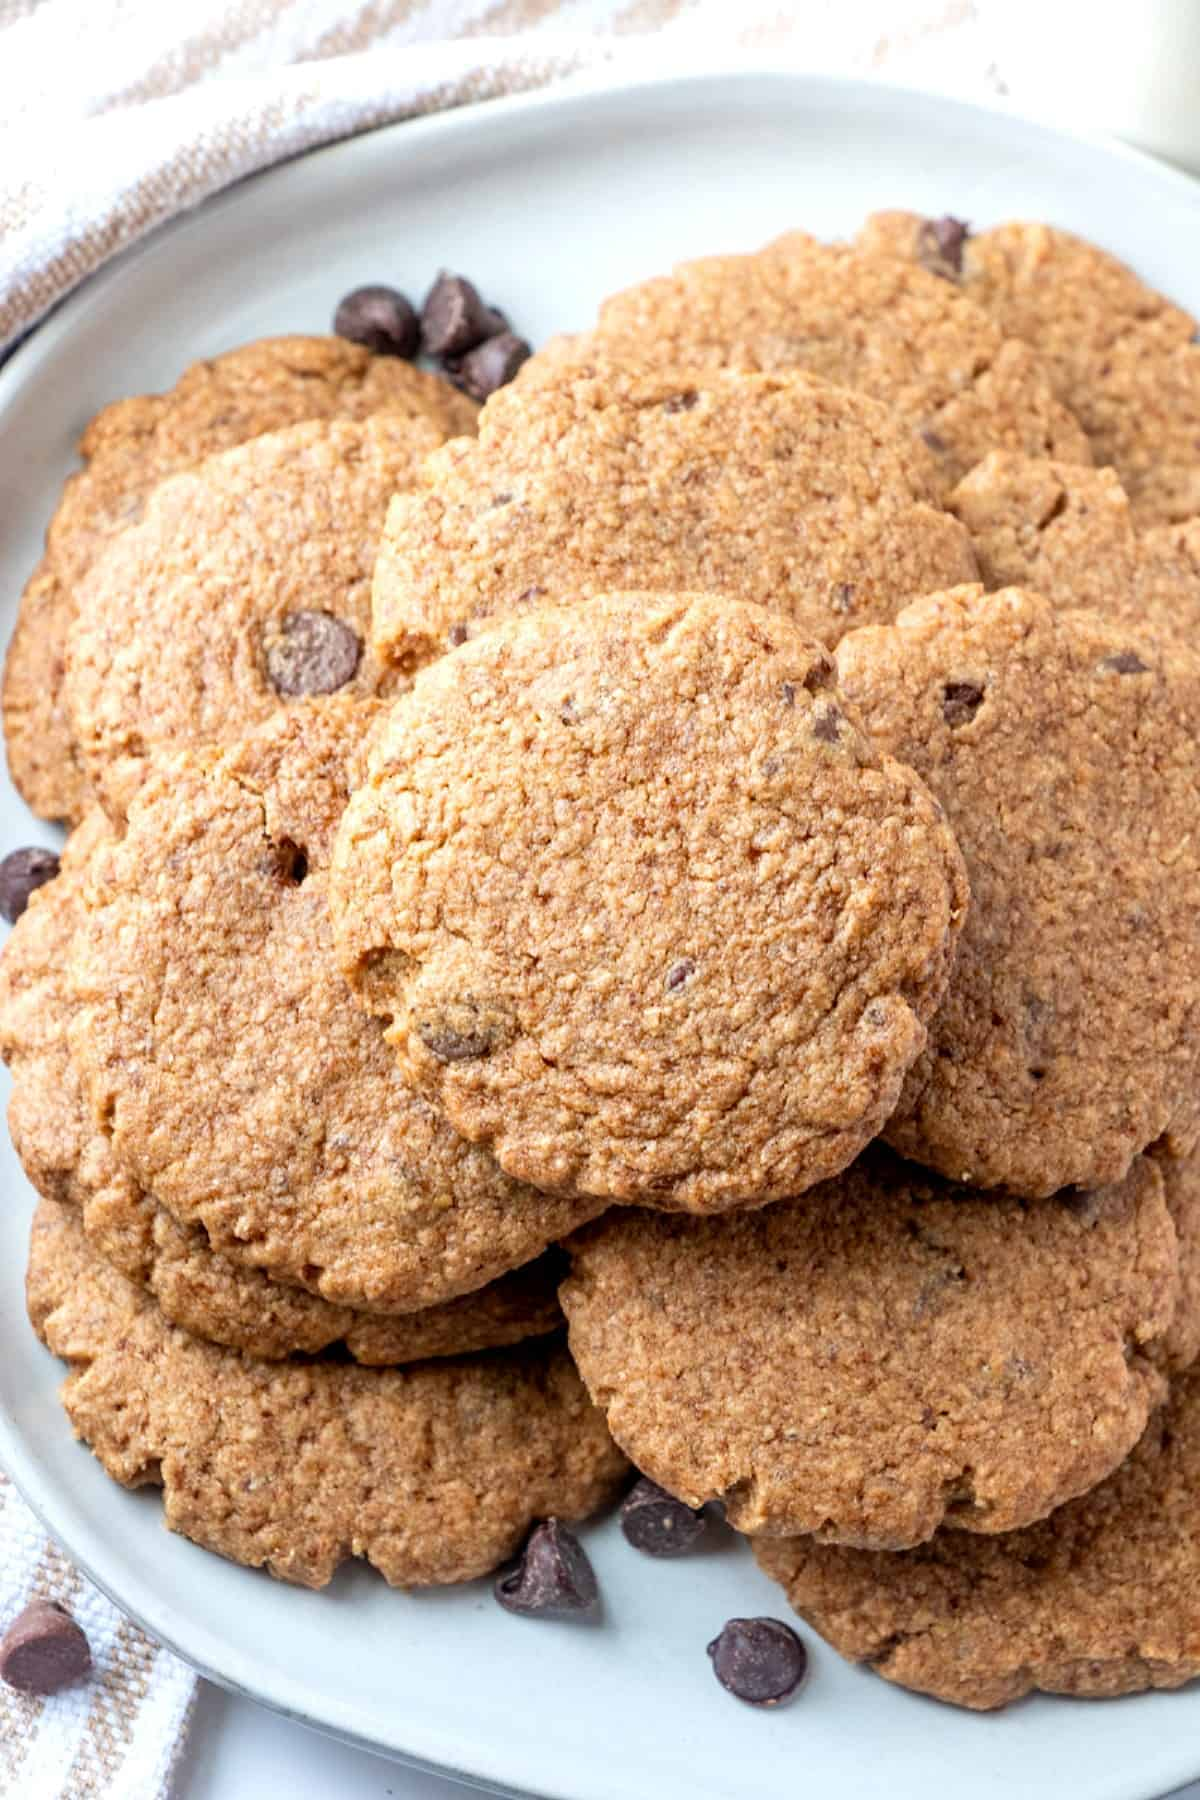 Angled view of a pile of baked peanut butter vegan cookies on a white plate.